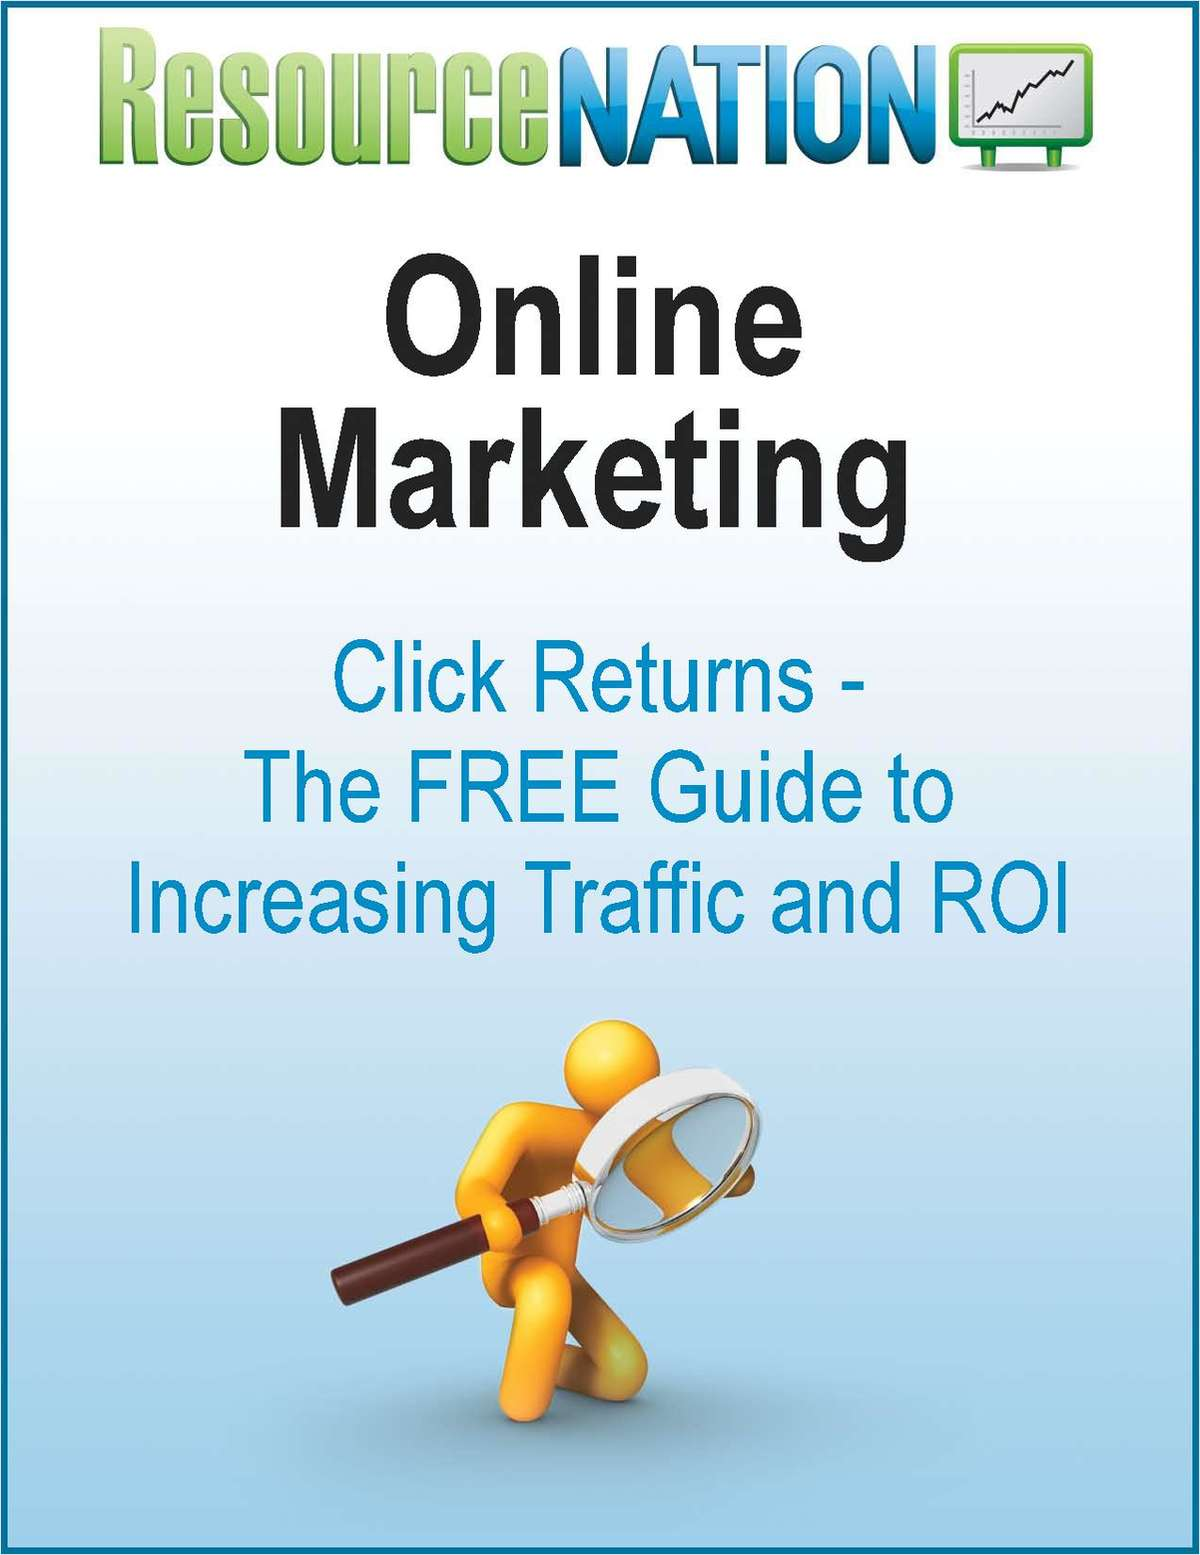 How to Grow Your Business Using Online Marketing